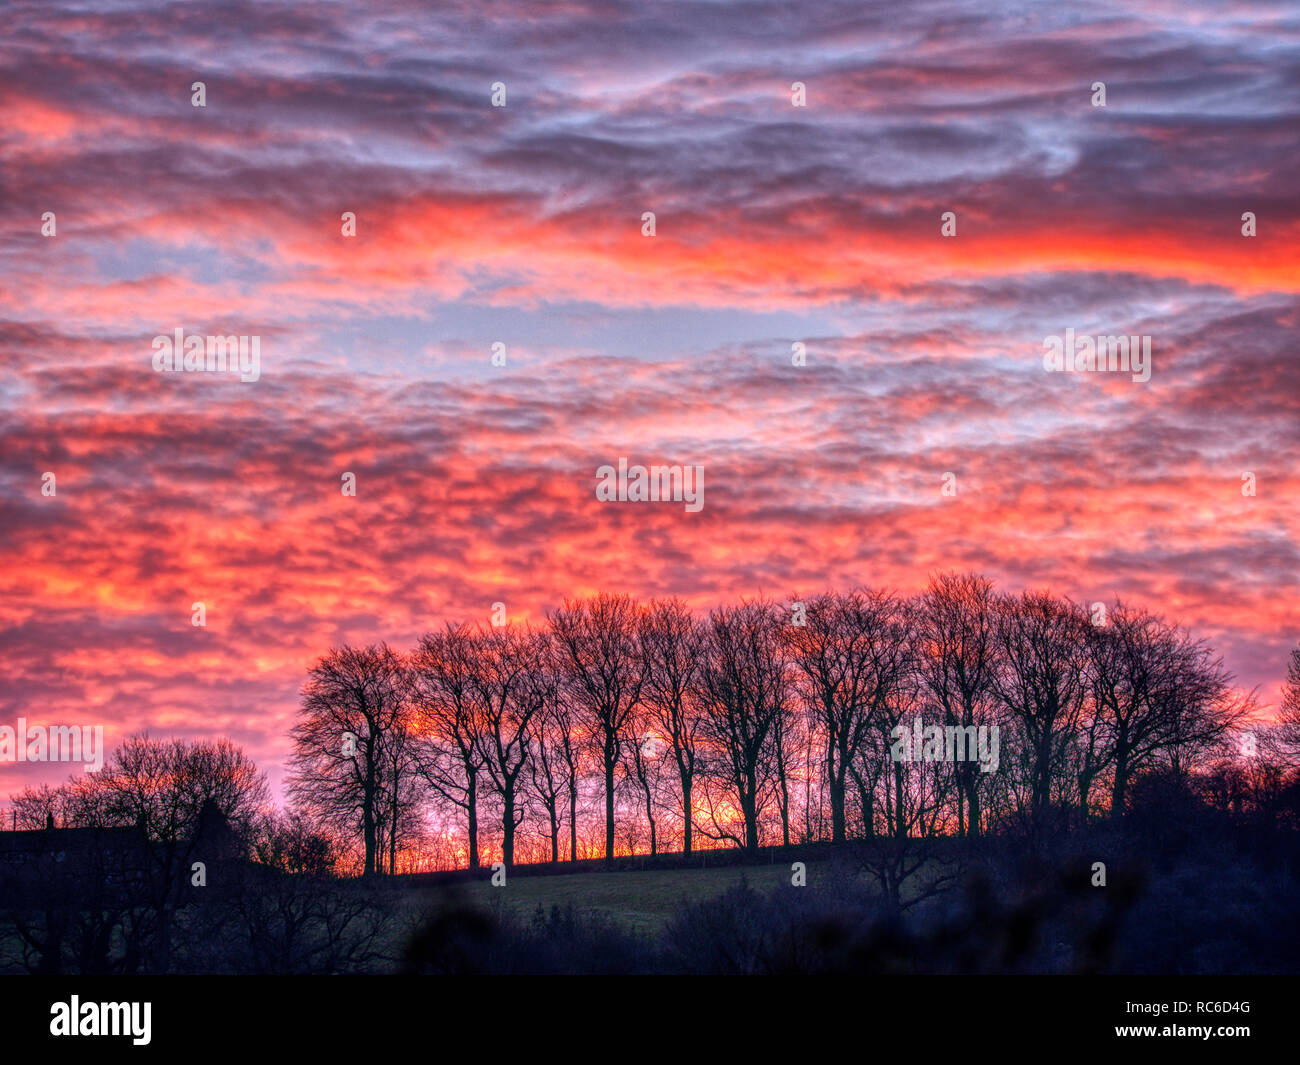 Wirksworth, Derbyshire Dales. 14th Jan 2019. UK Weather: spectacular sunrise from Hatfield Farm, Wirksworth in the Derbyshire Dales, Peak District National Park Credit: Doug Blane/Alamy Live News - Stock Image